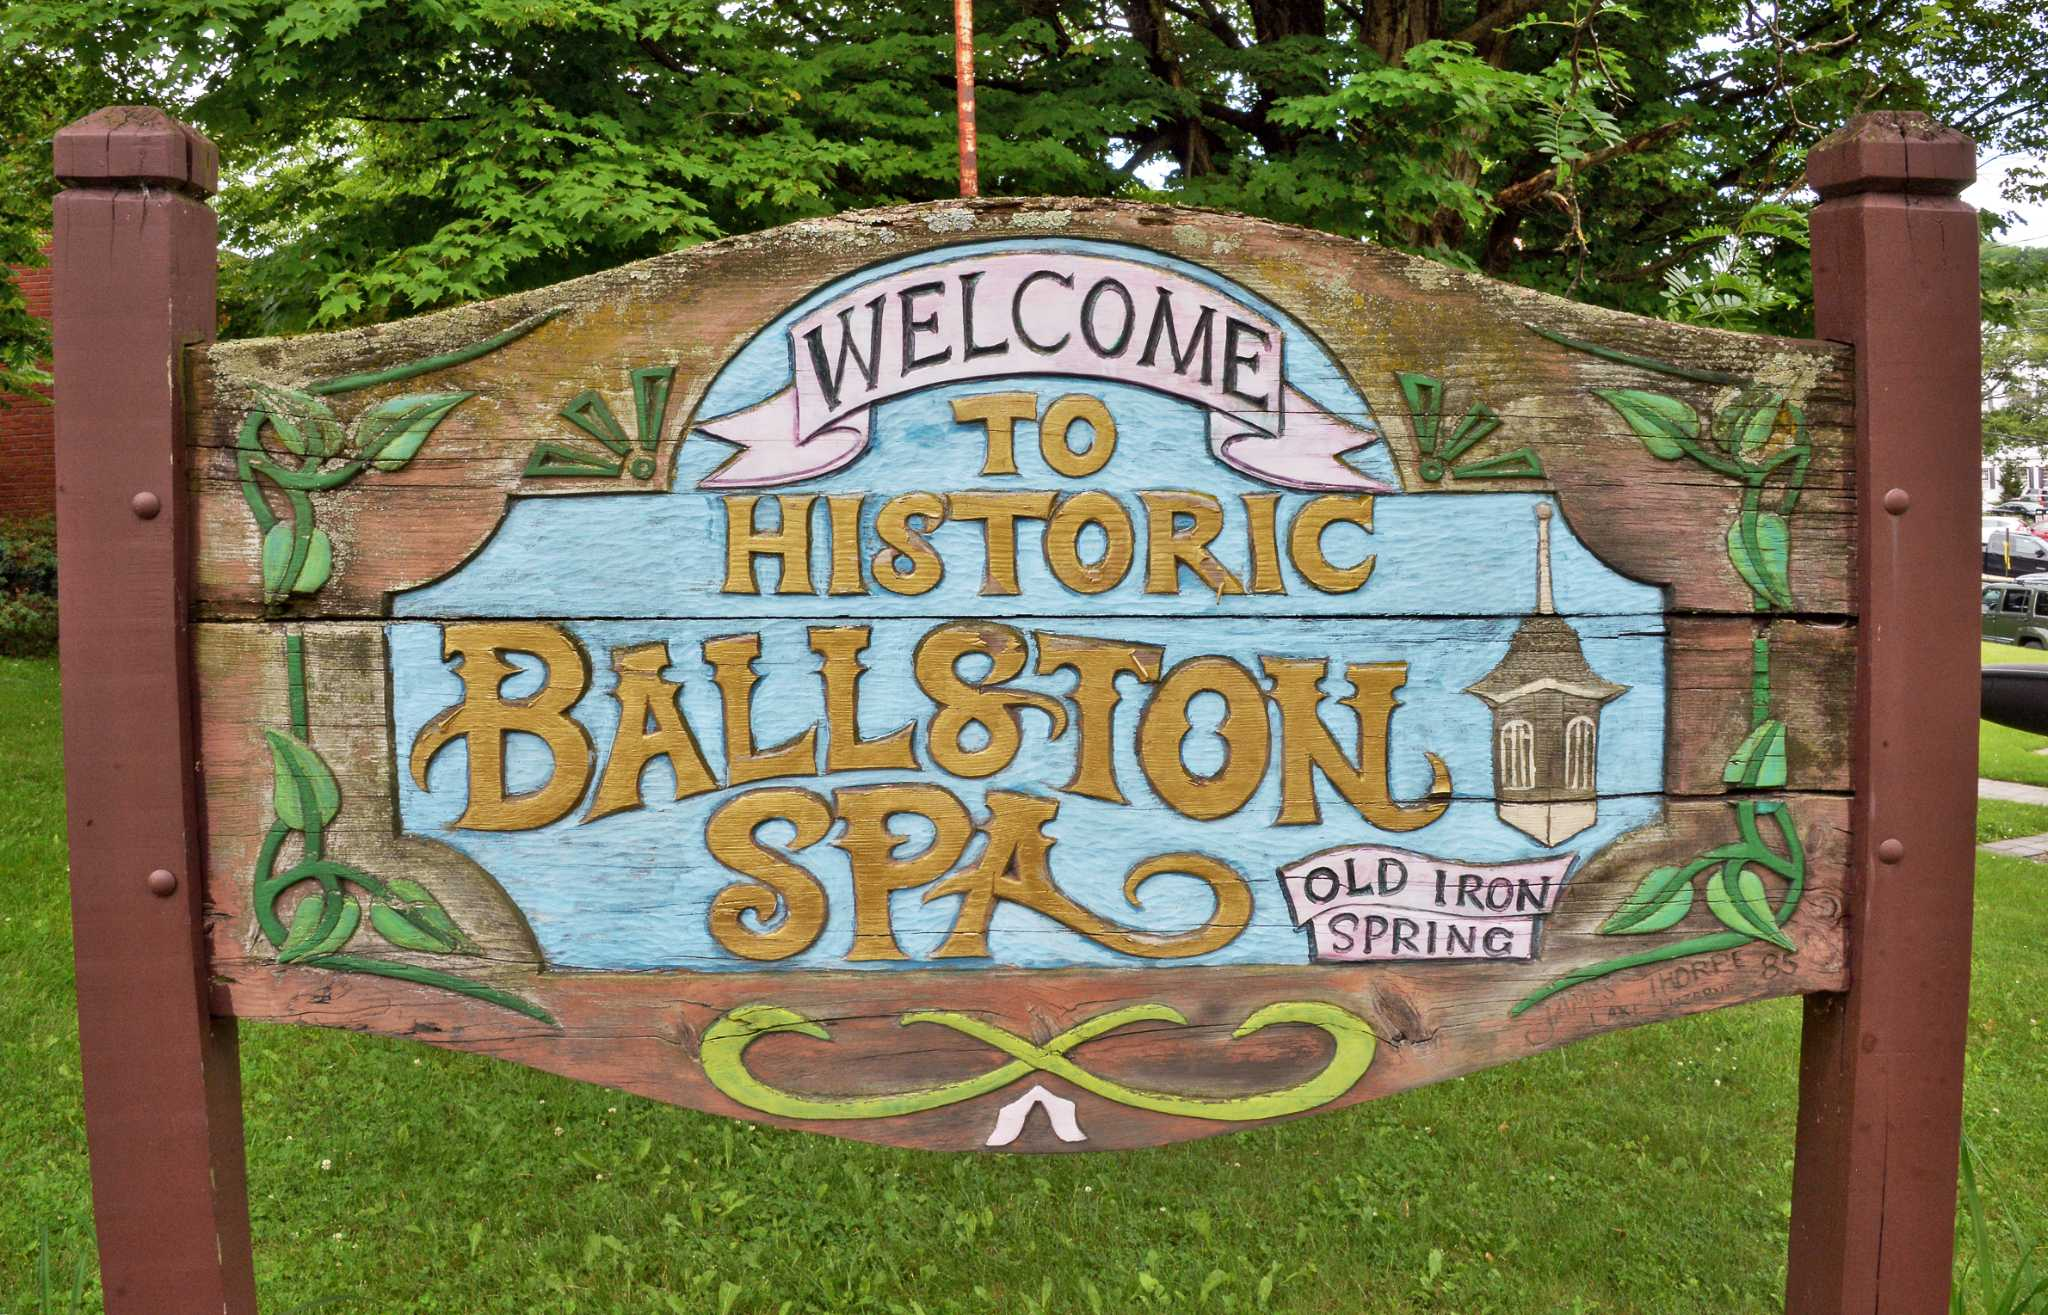 ballston spa middle eastern singles Learn how to become a teacher in new york's ballston spa central school district and find out the average teacher salary.